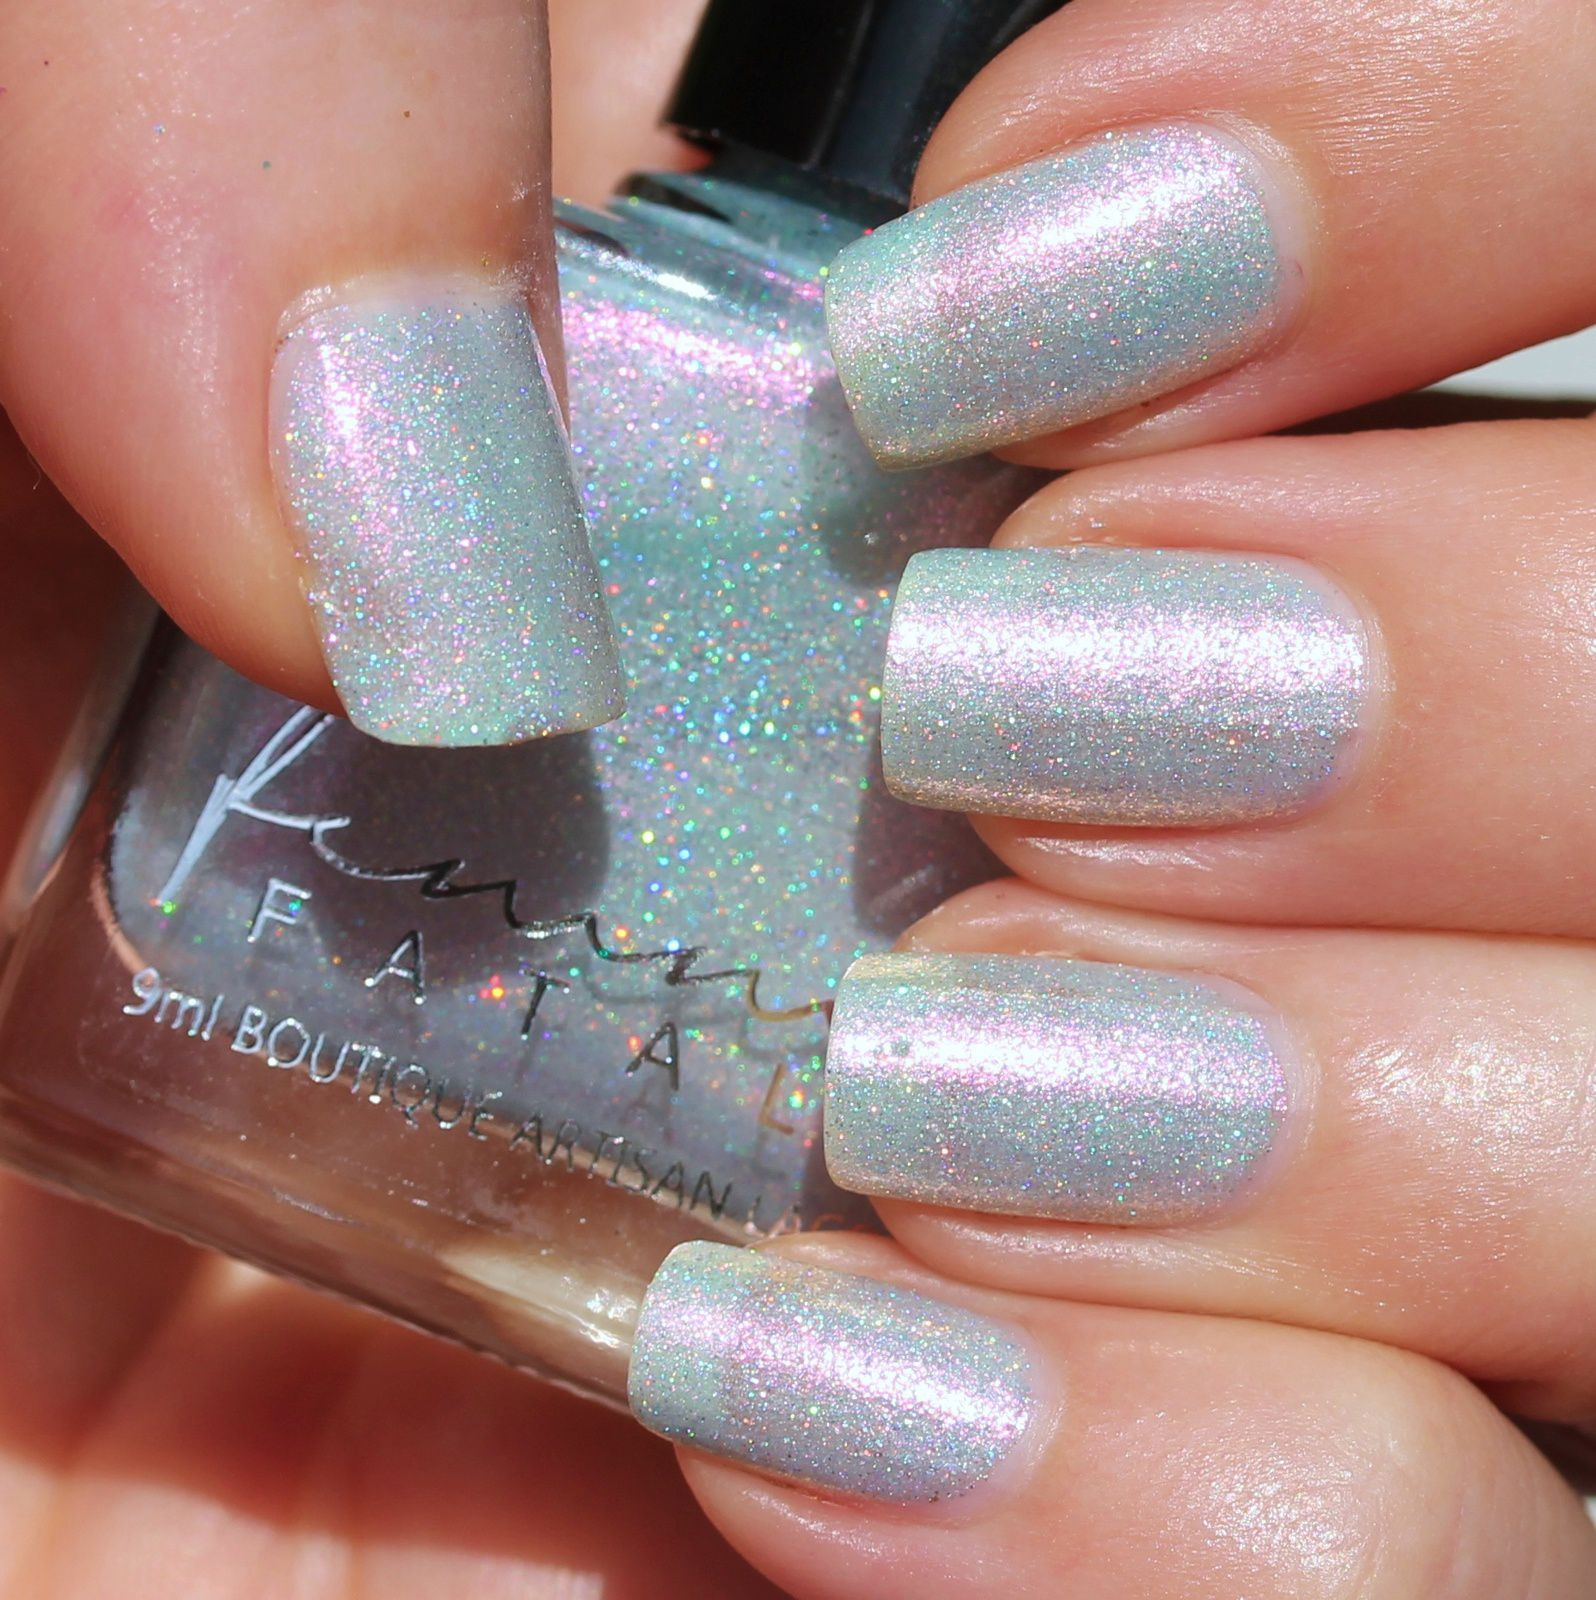 Femme Fatale Cosmetics - Hear of the Mountain (3 coats, no top coat)